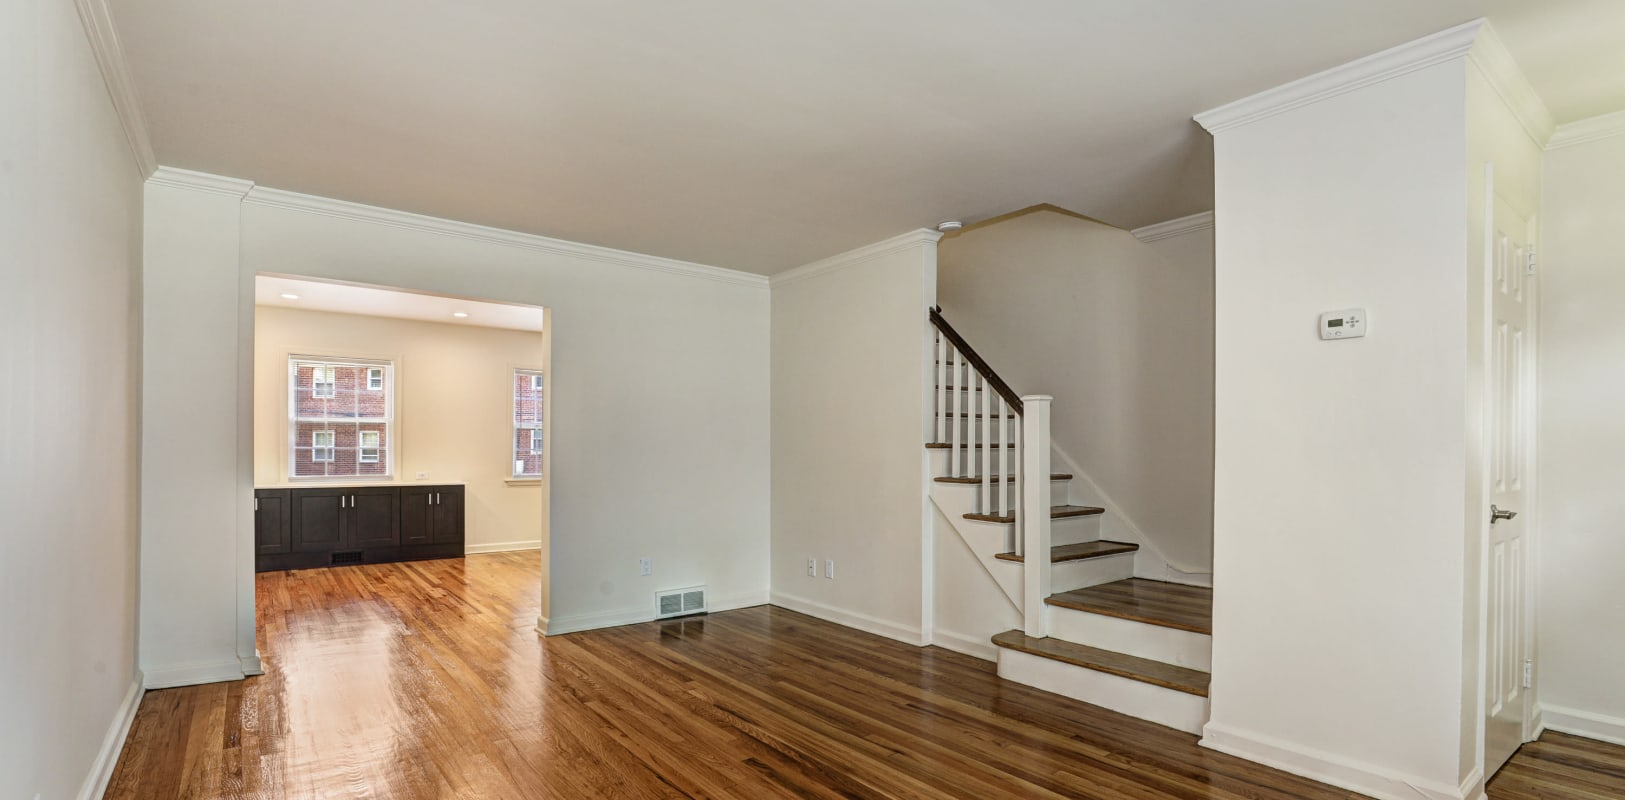 Spacious living room with upstairs access at General Wayne Townhomes and Ridgedale Gardens in Madison, New Jersey